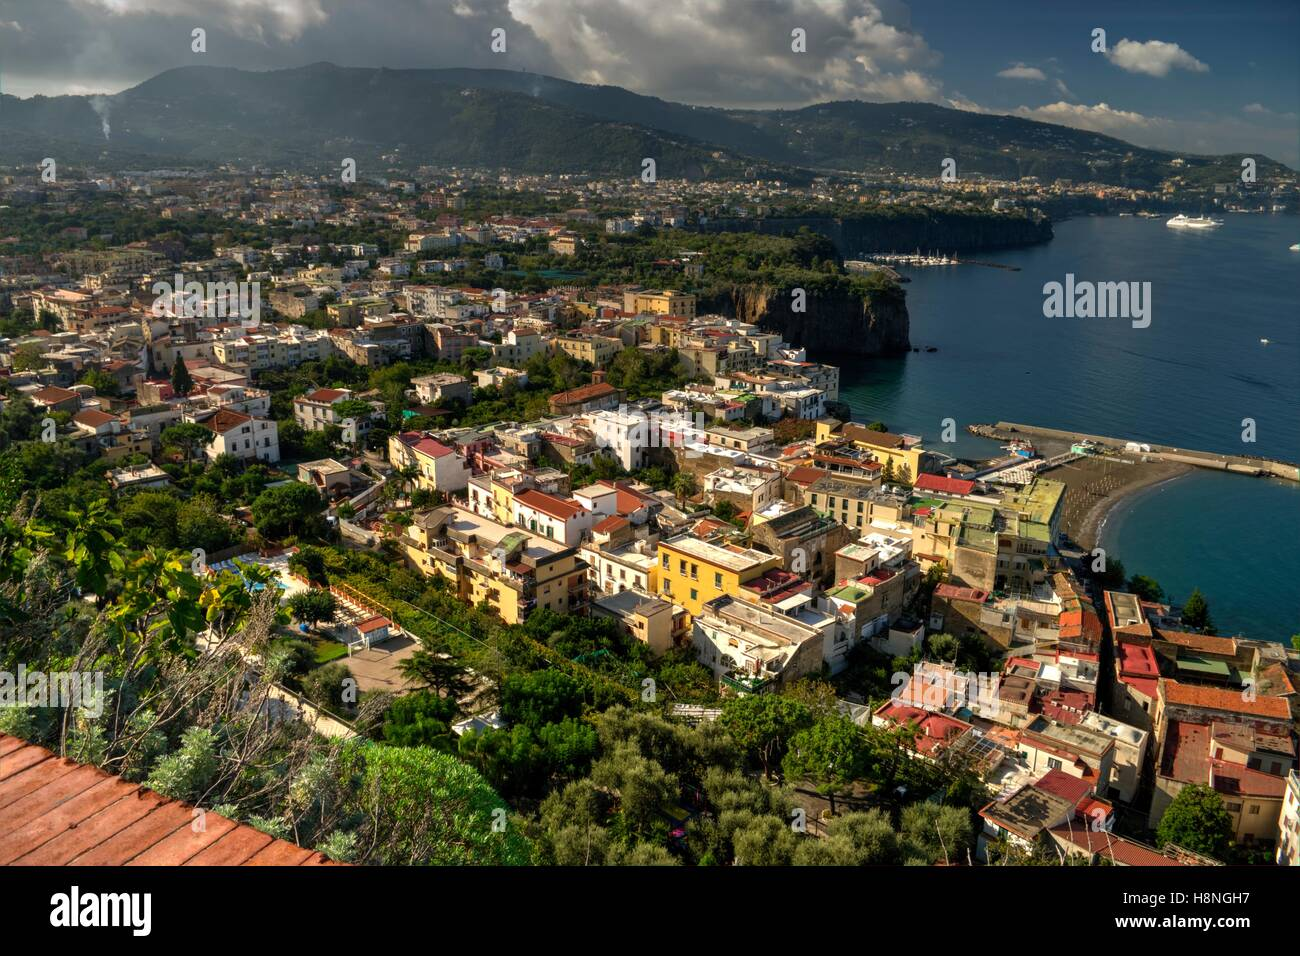 Sorrento Bay, Italy with Meta in foreground - Stock Image